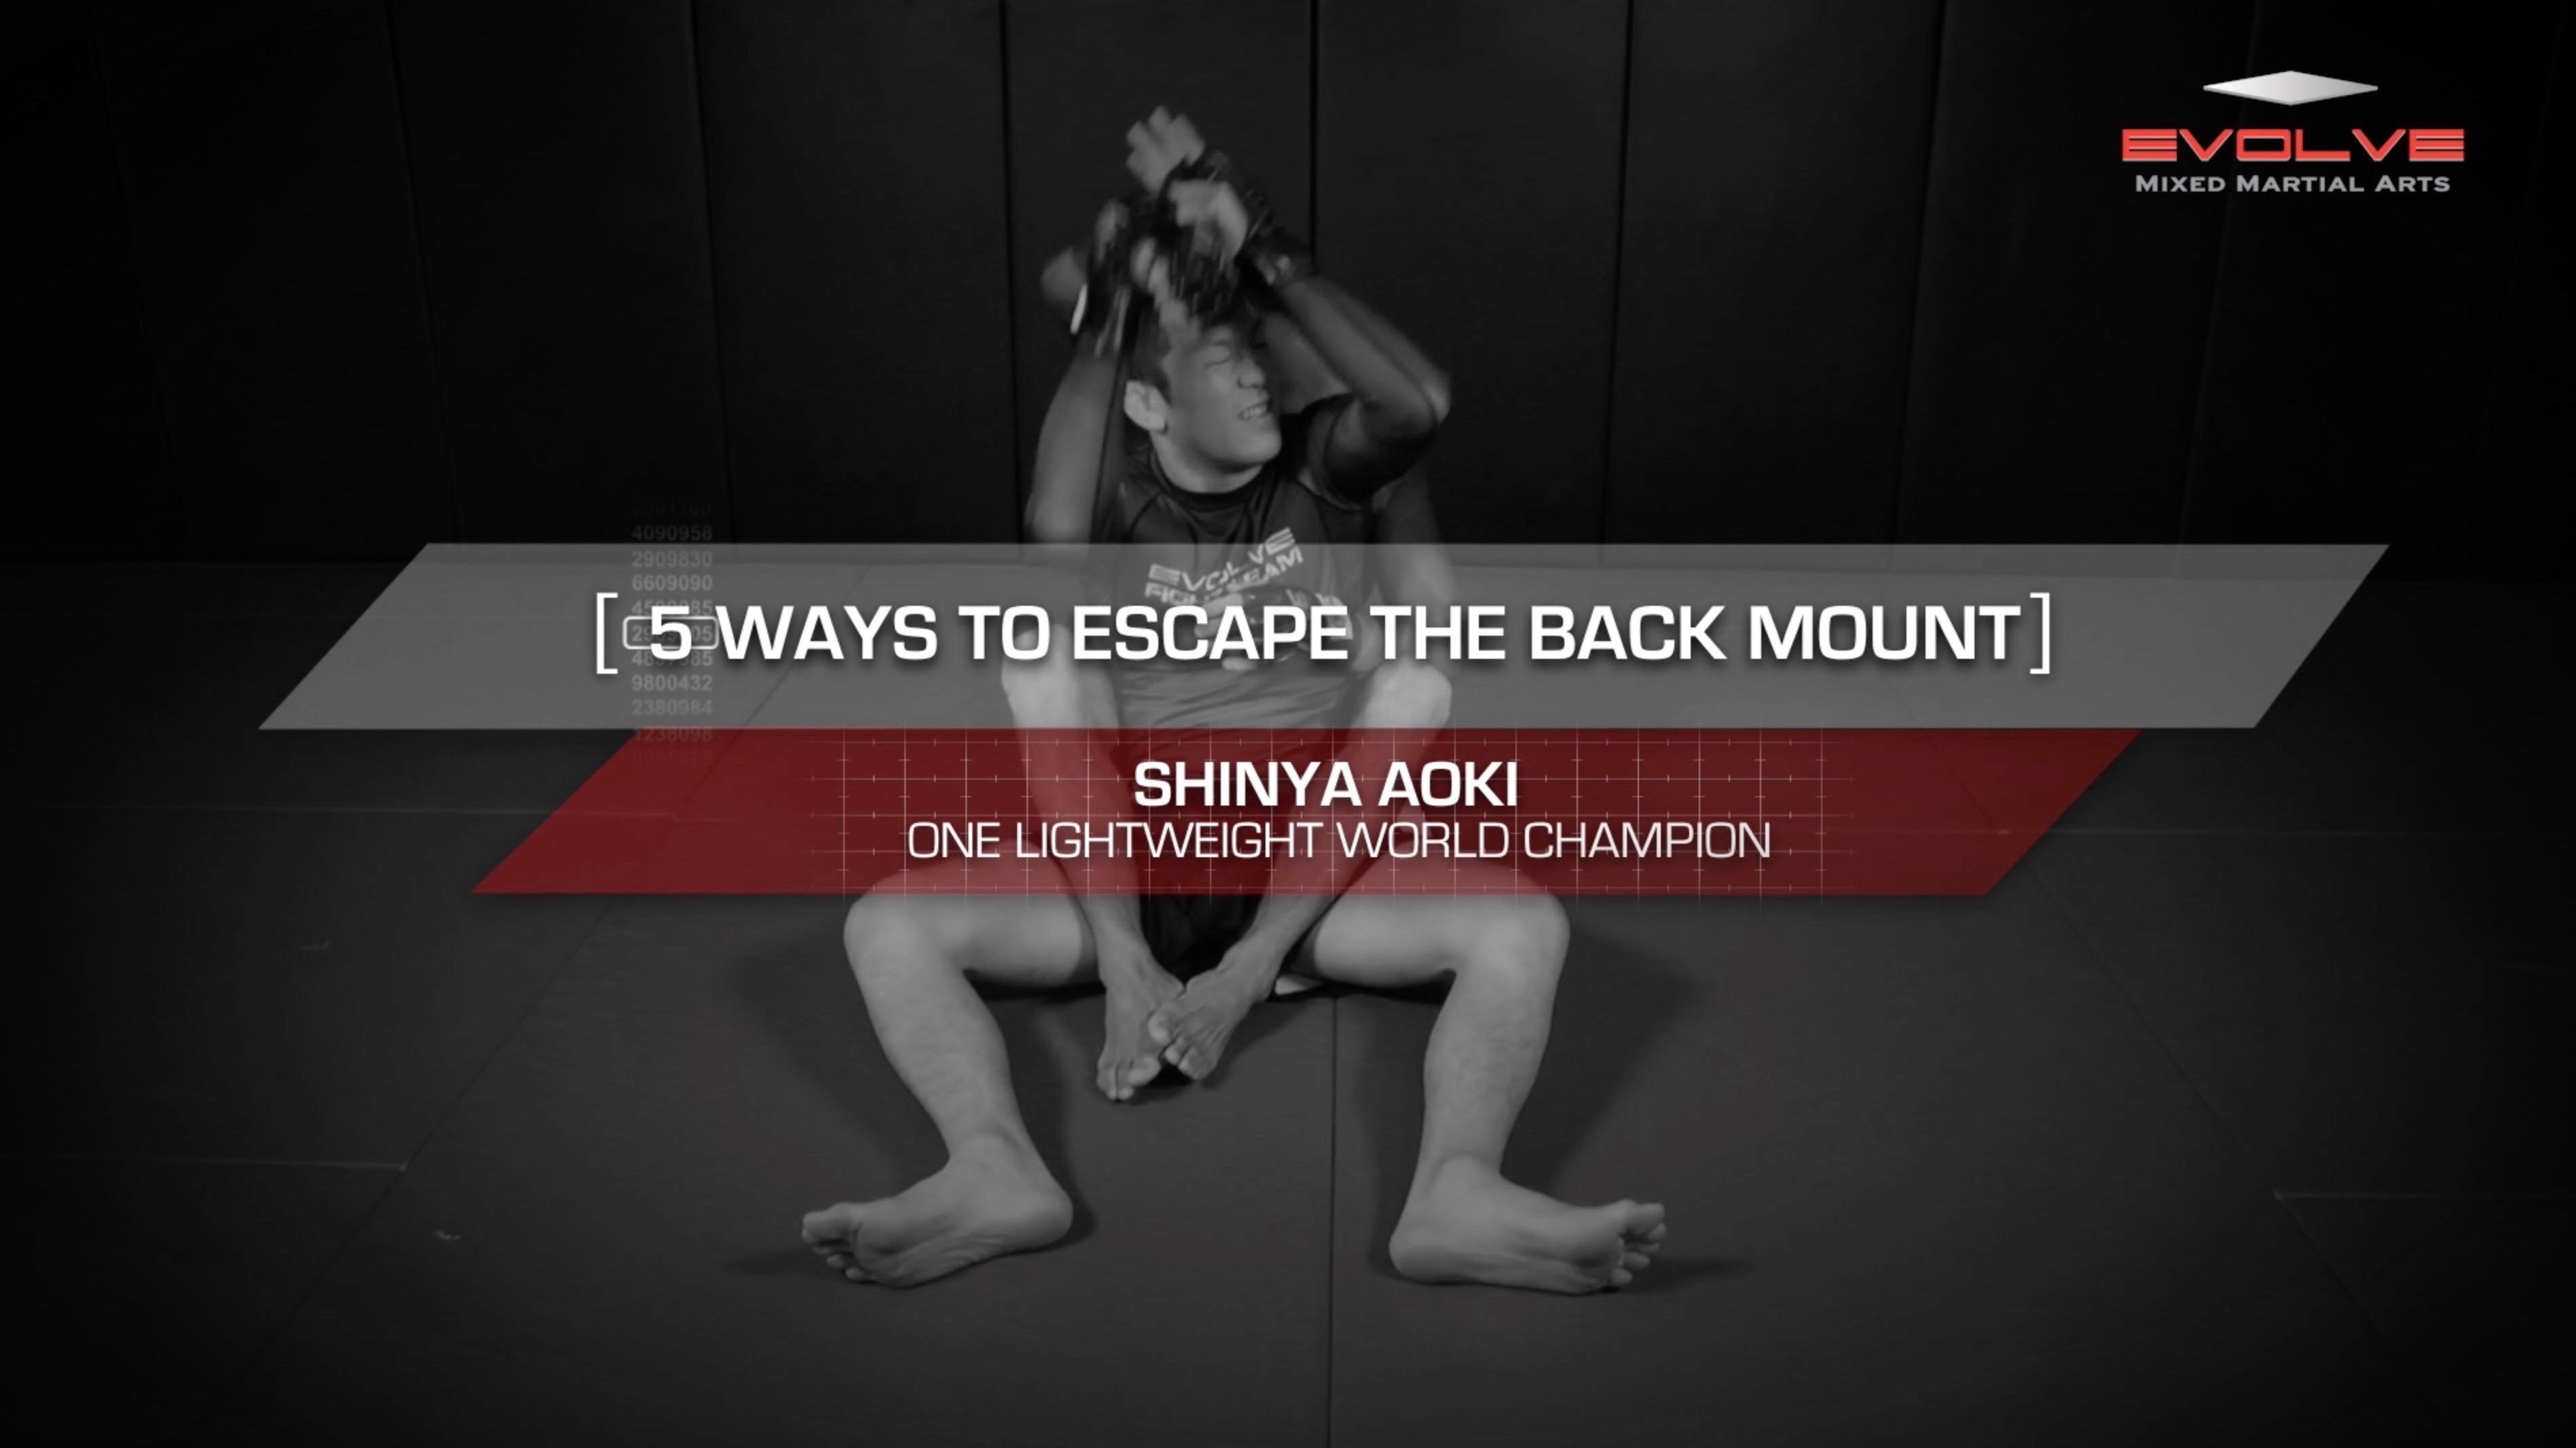 Shinya Aoki's 5 Ways To Escape The Back Mount – Evolve